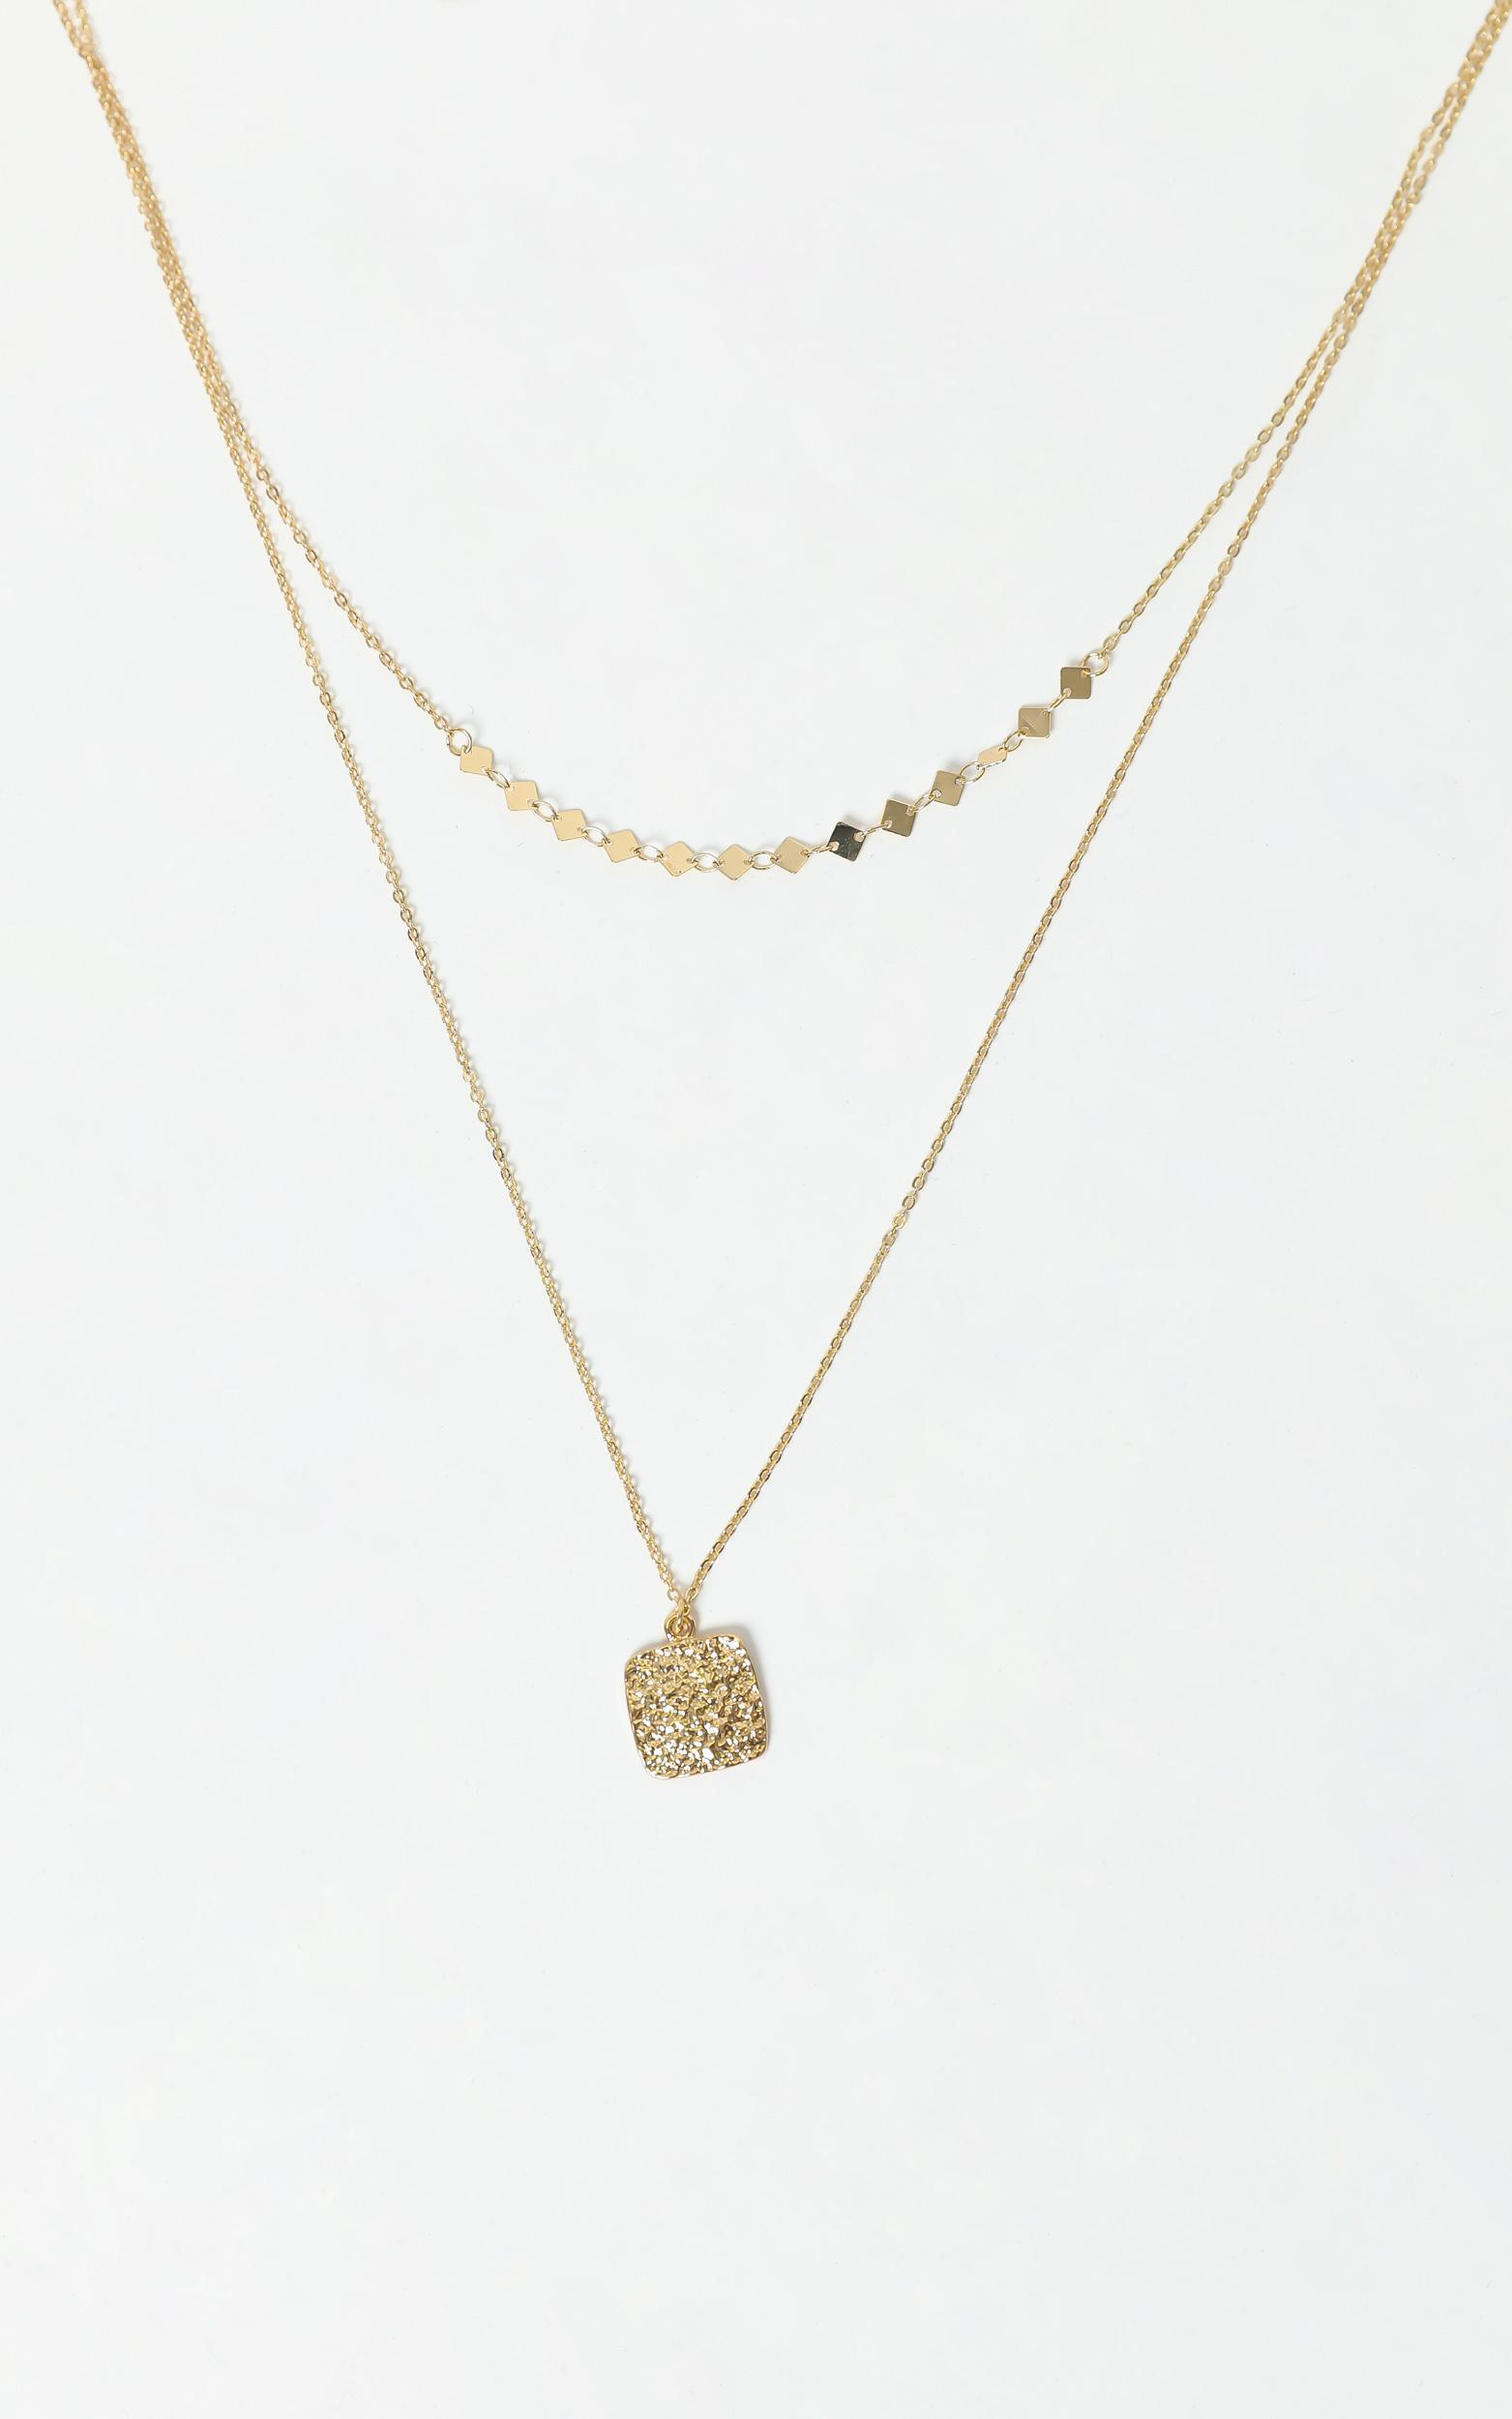 Pendent Necklace in Gold, , hi-res image number null